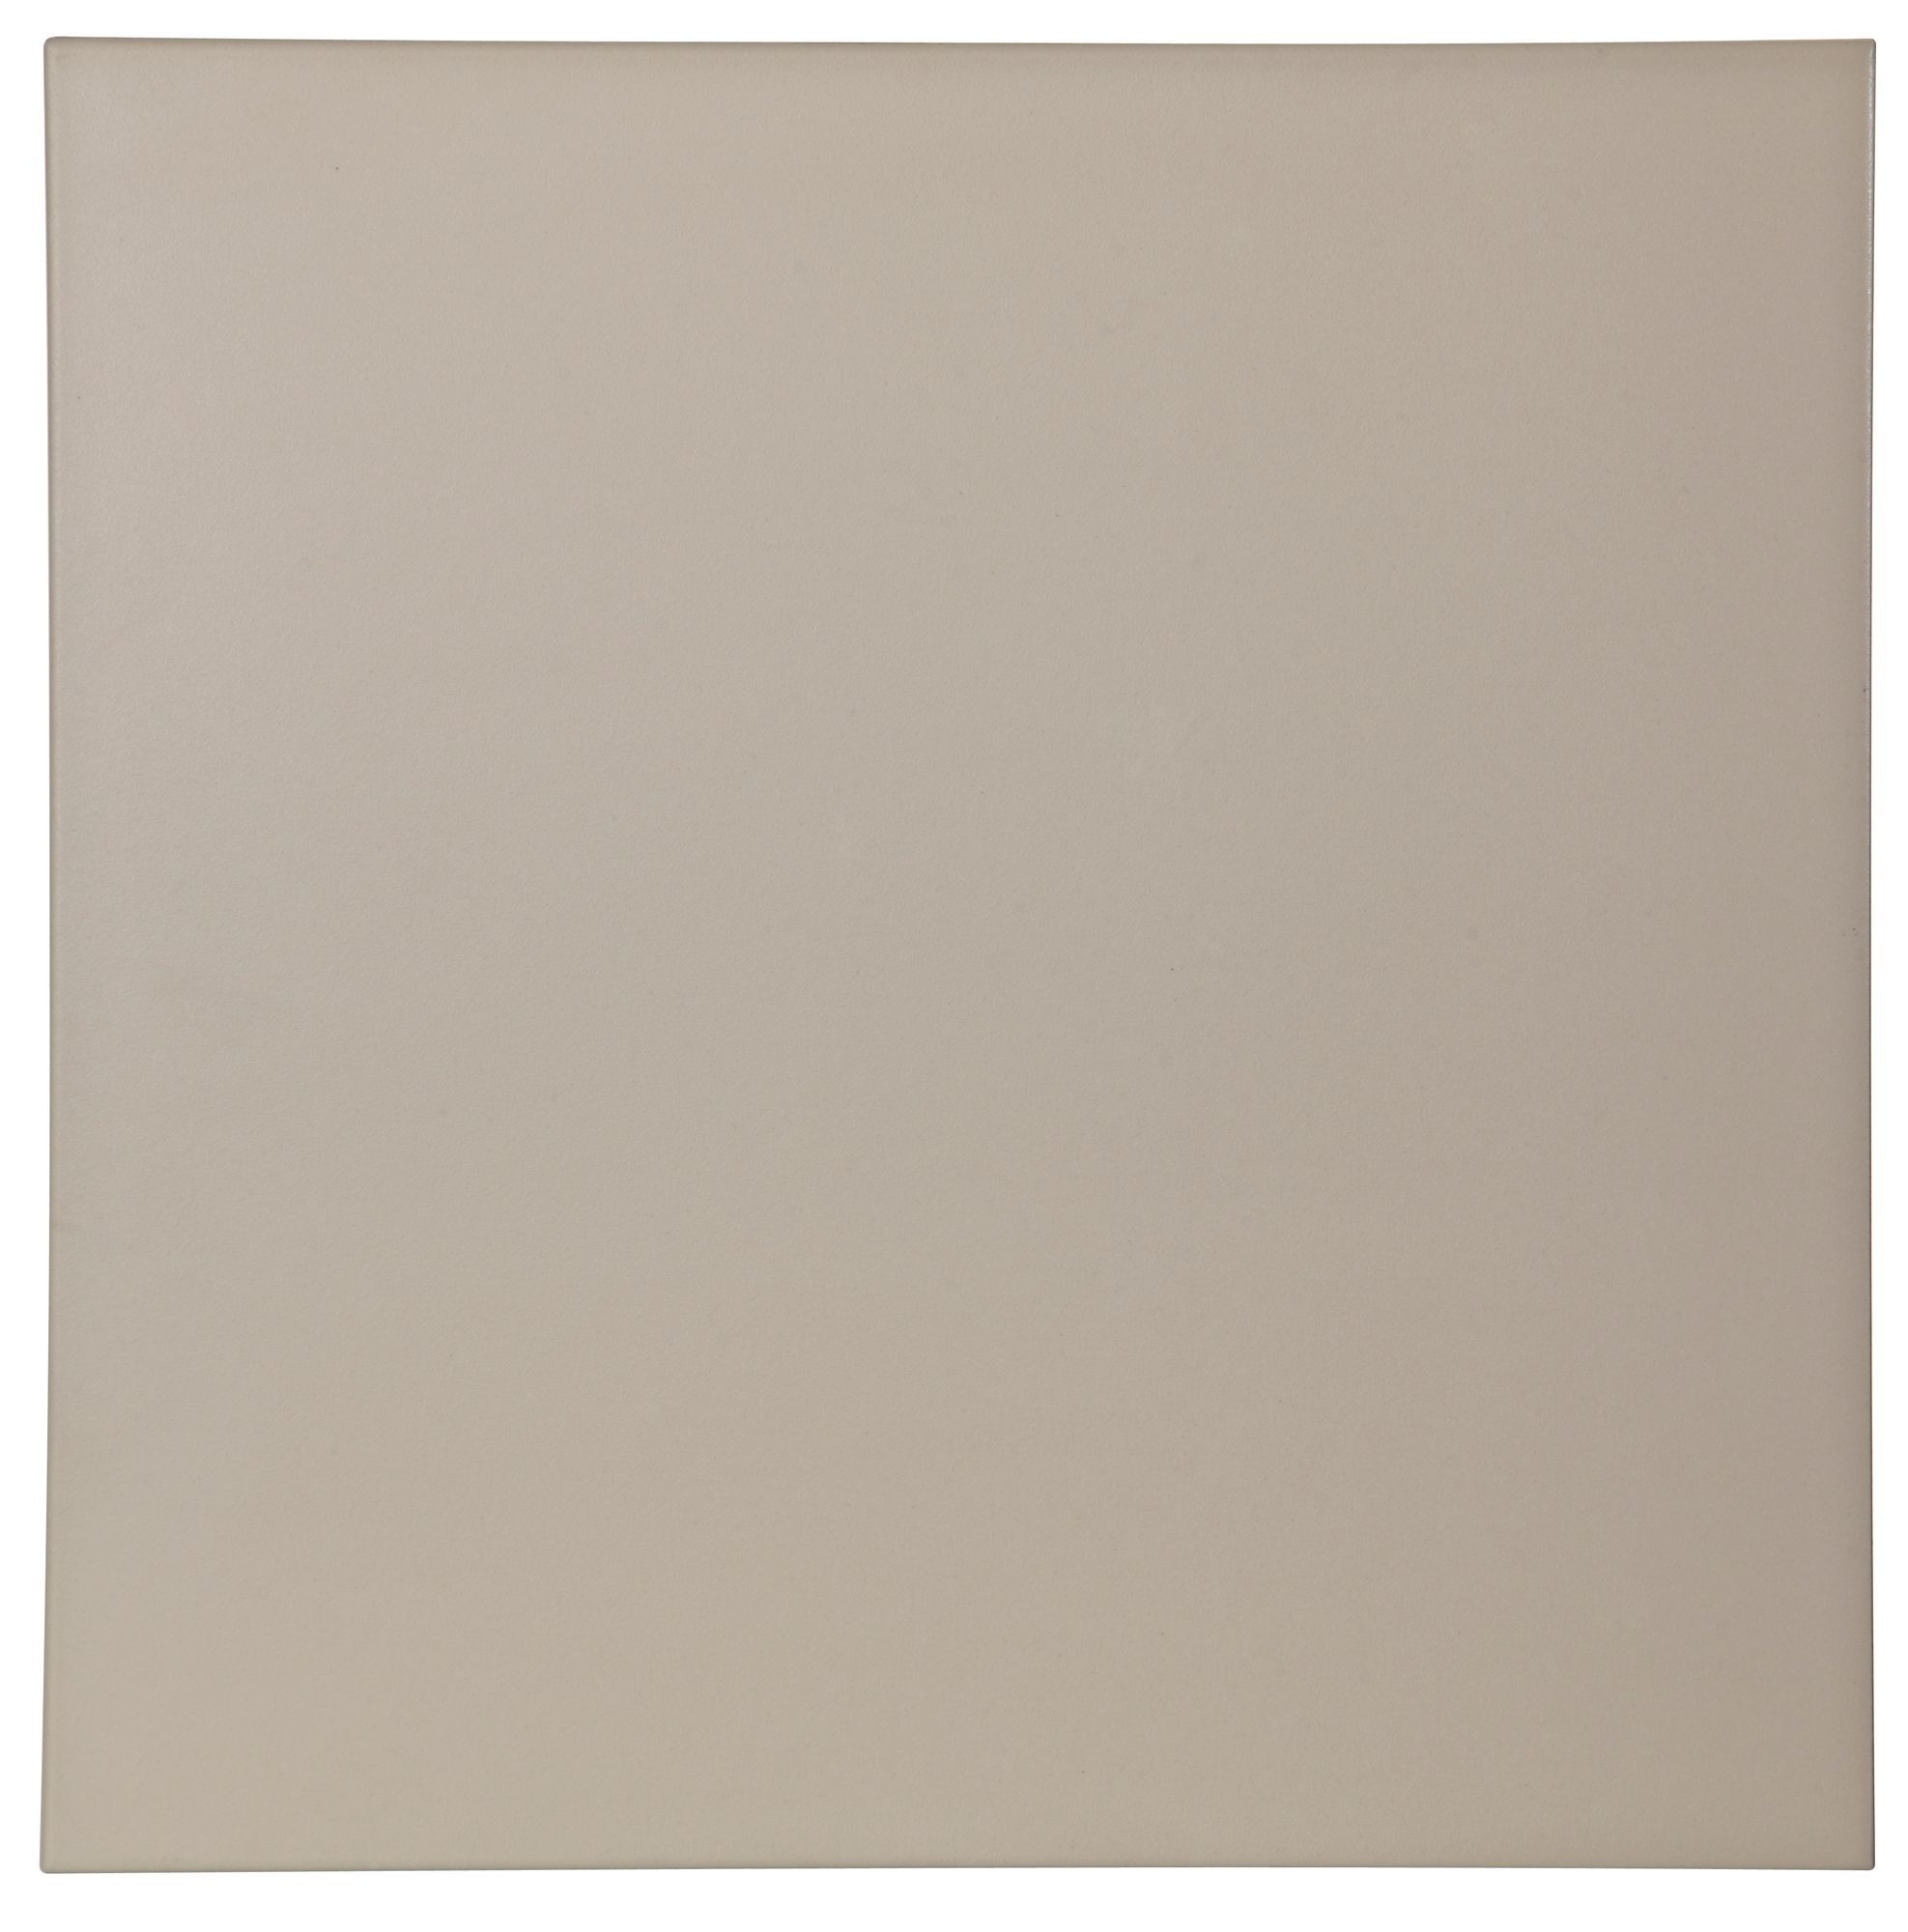 Umbria cream porcelain floor tile pack of 9 l333mm w333mm umbria cream porcelain floor tile pack of 9 l333mm w333mm departments diy at bq dailygadgetfo Choice Image